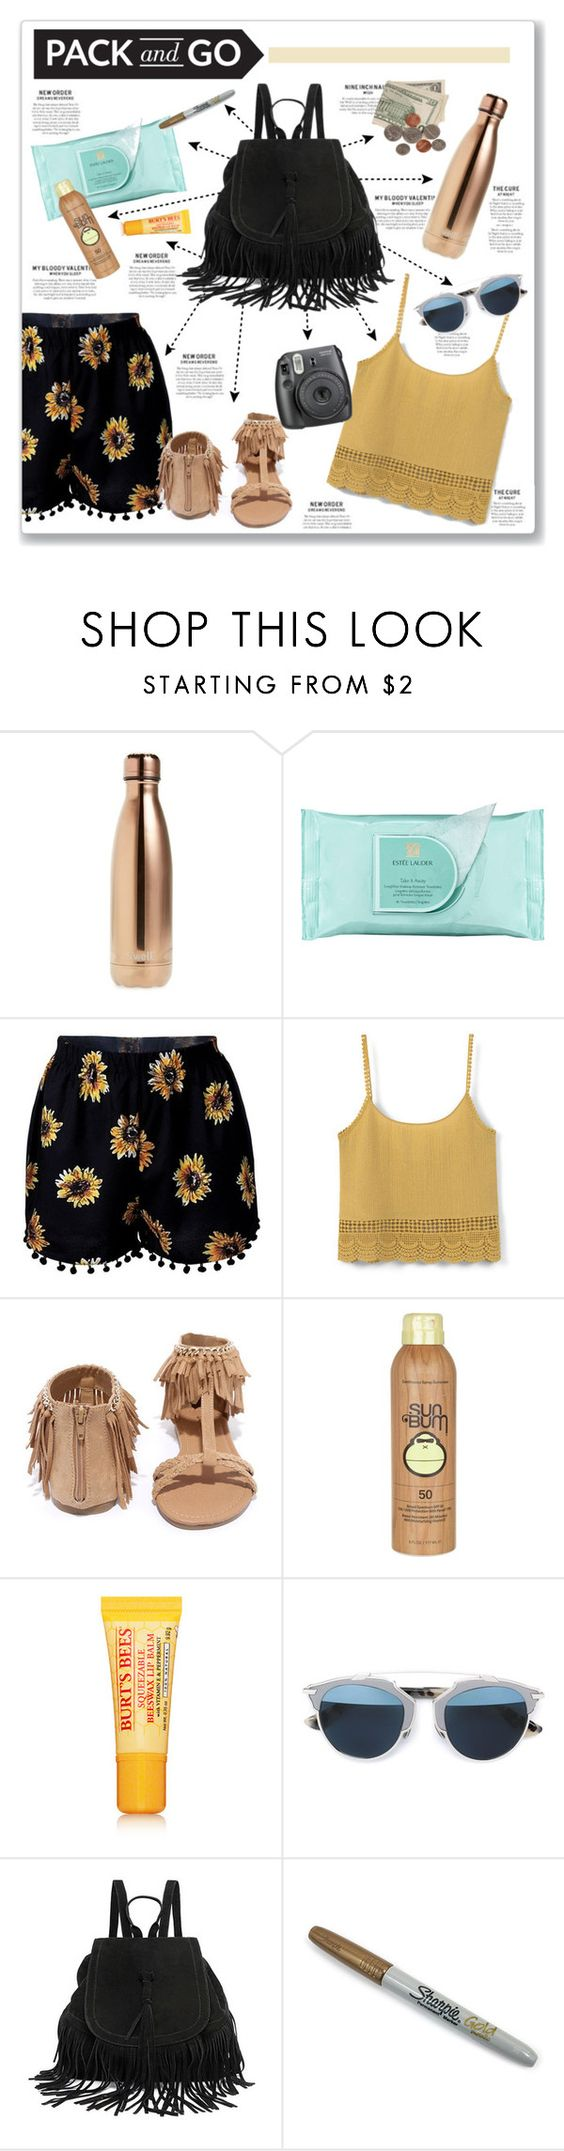 """""""Pack for Coachella!"""" by kellylynne68 ❤ liked on Polyvore featuring S'well, Estée Lauder, MANGO, Qupid, Sun Bum, Burt's Bees, Christian Dior, Sharpie, coachella and Packandgo"""